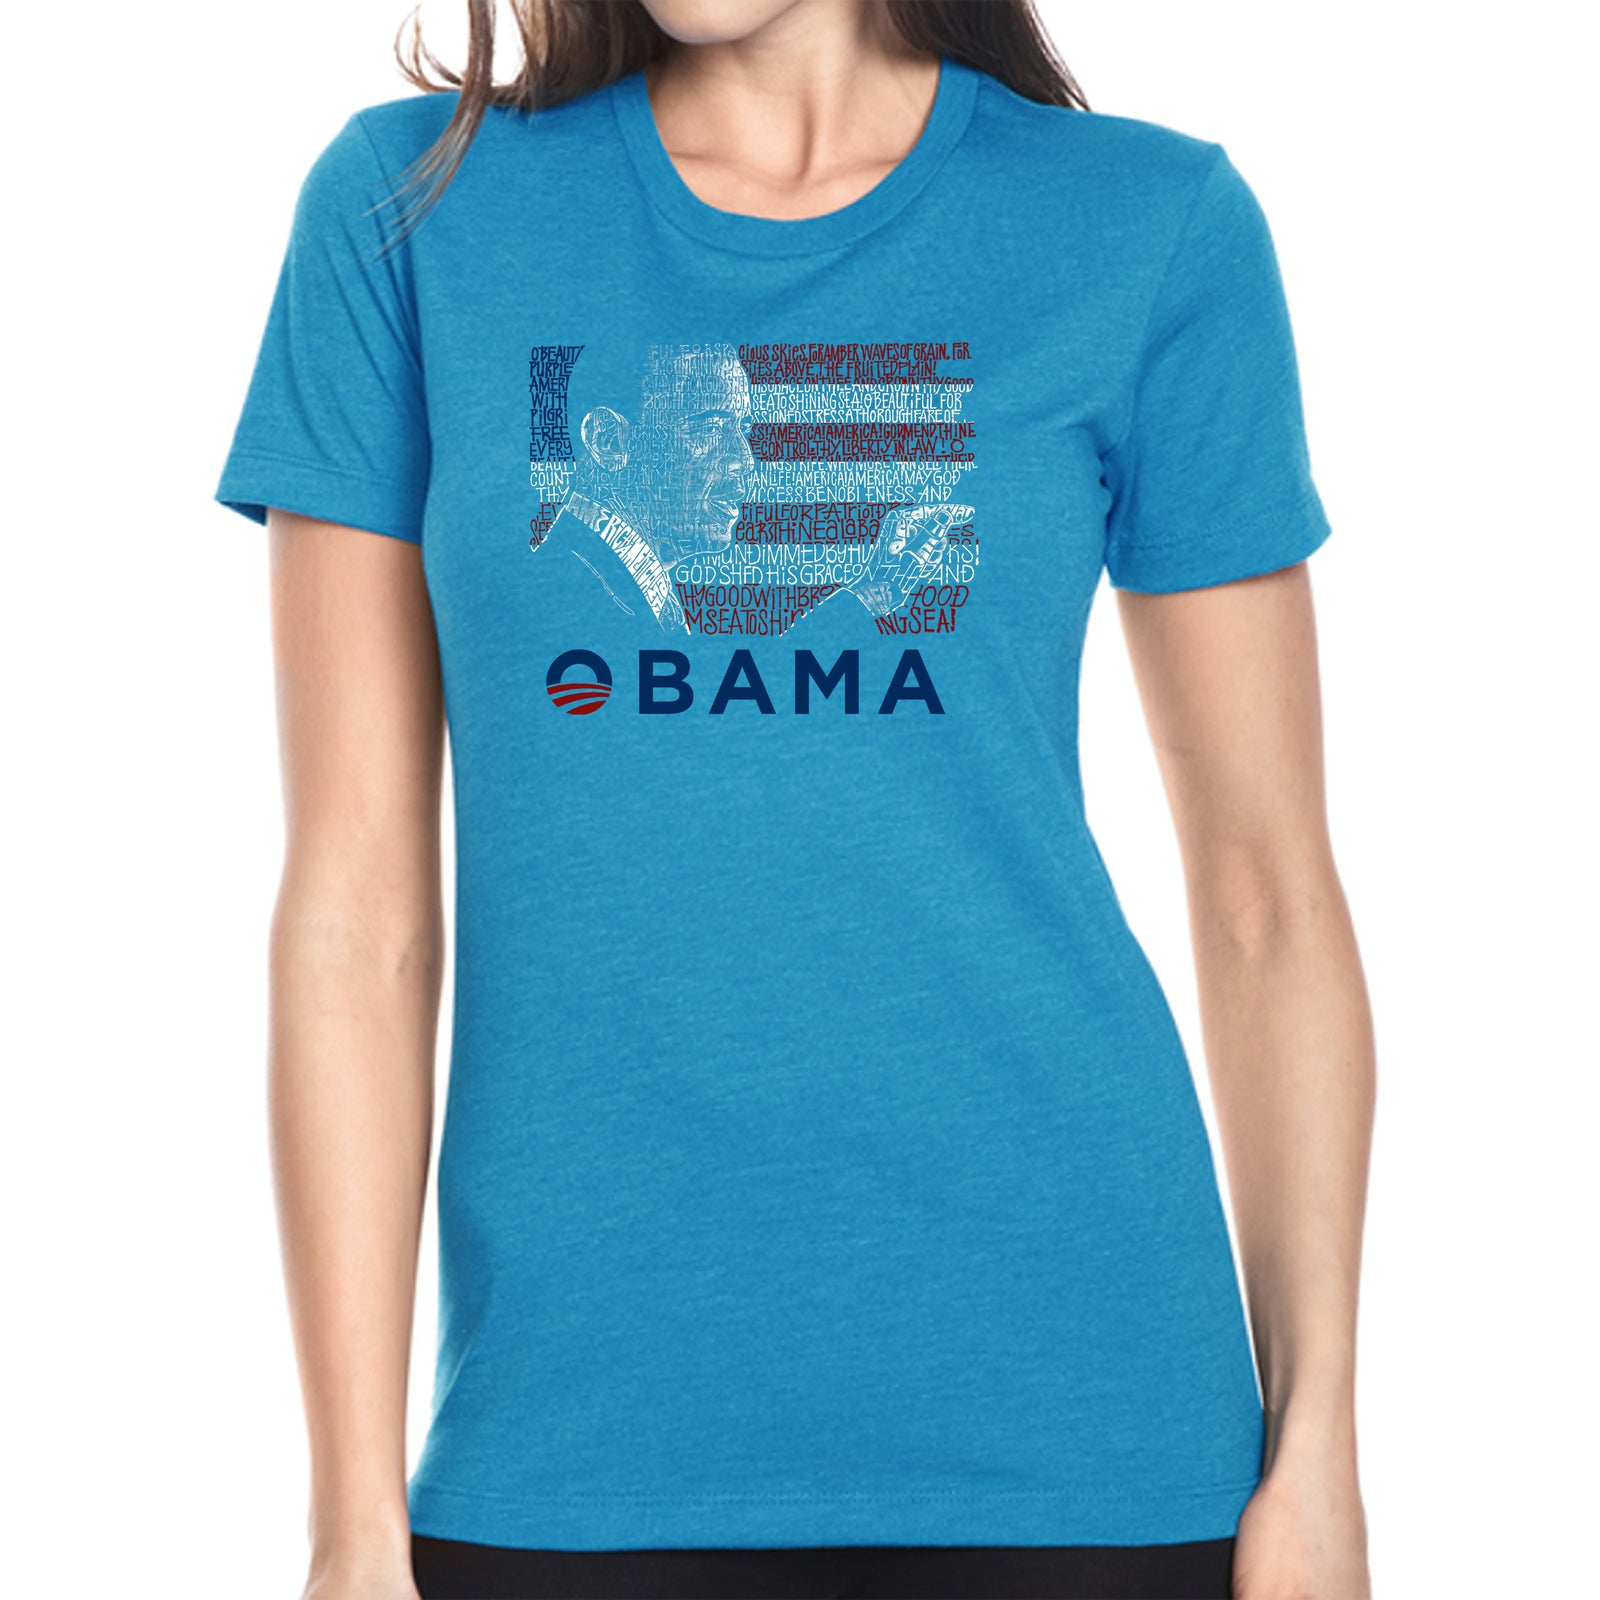 Women's Premium Blend Word Art T-shirt - BARACK OBAMA - ALL LYRICS TO AMERICA THE BEAUTIFUL